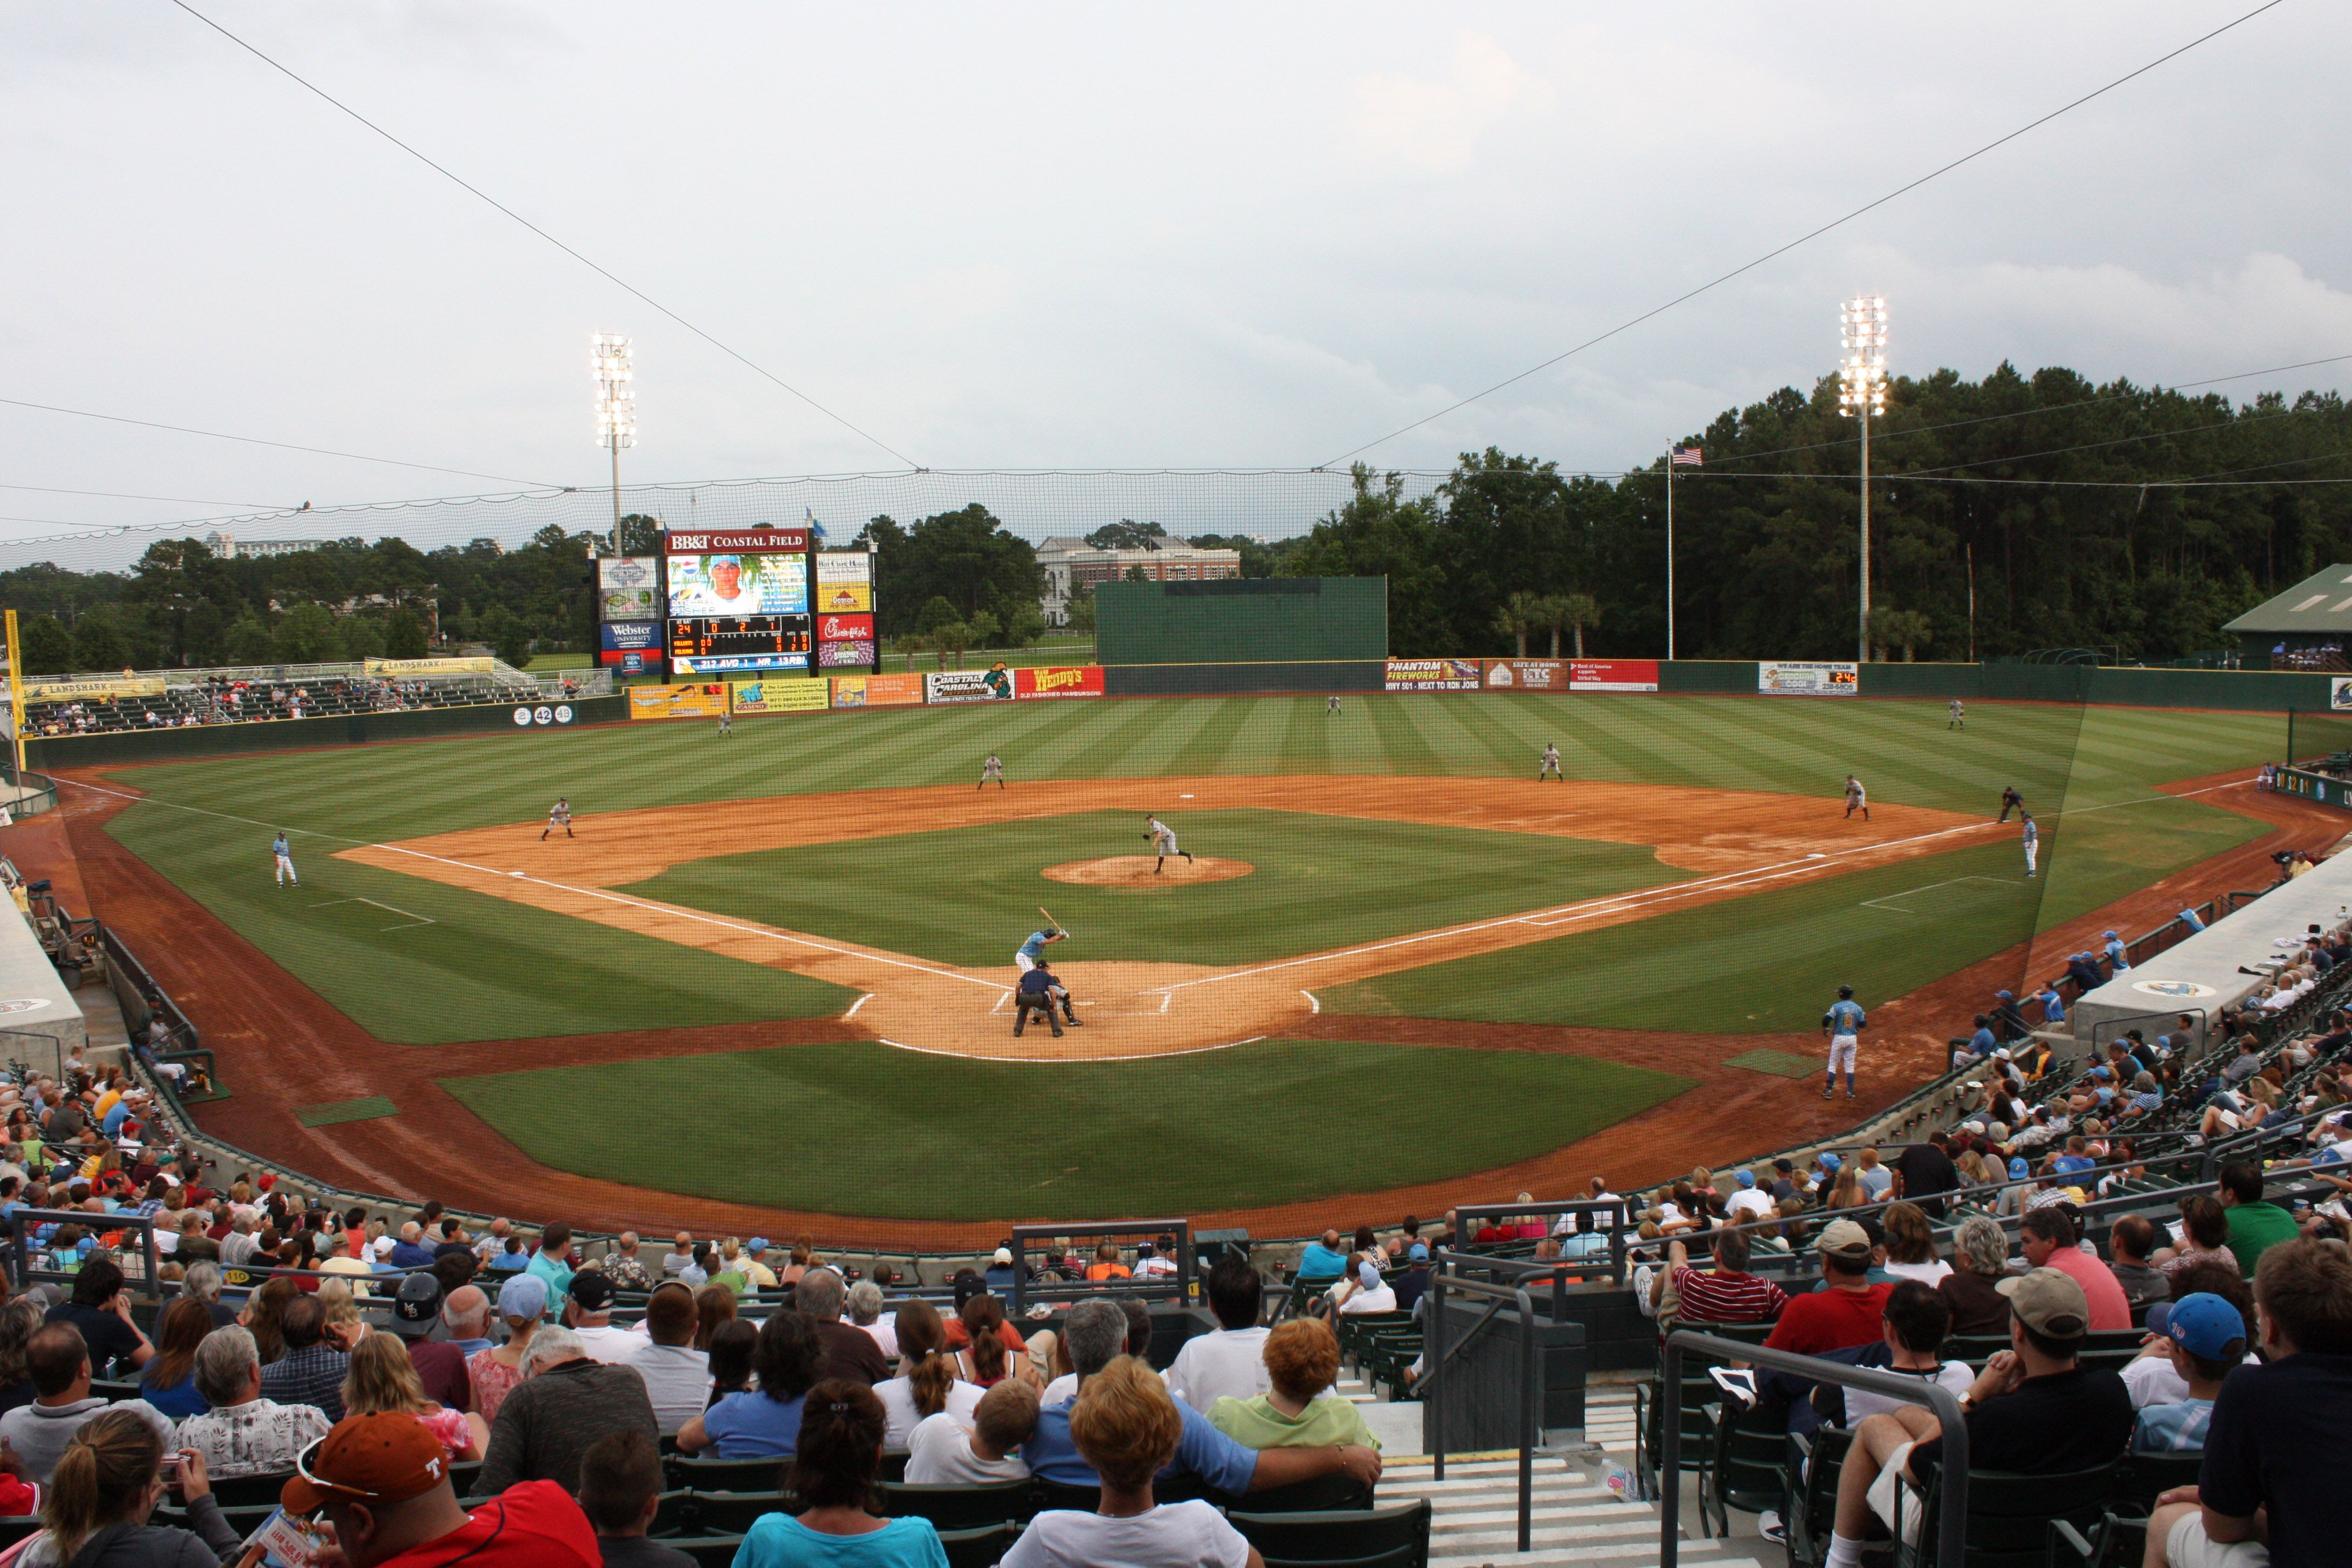 See a baseball game at Pelican Stadium and see the Myrtle